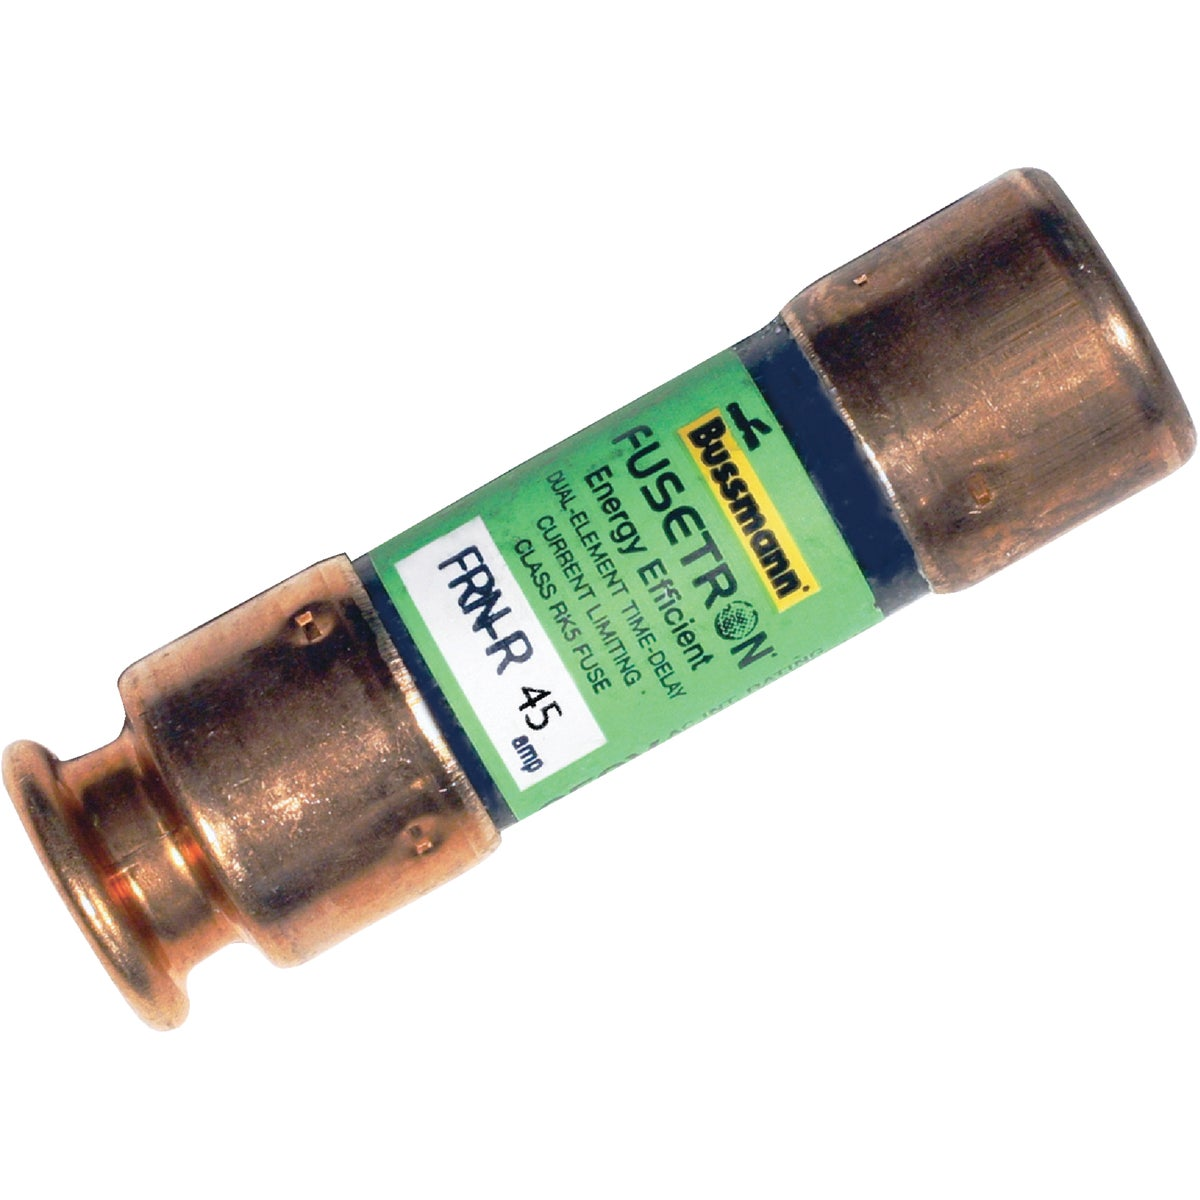 45A CARTRIDGE FUSE - FRN-R-45 by Bussmann Cooper